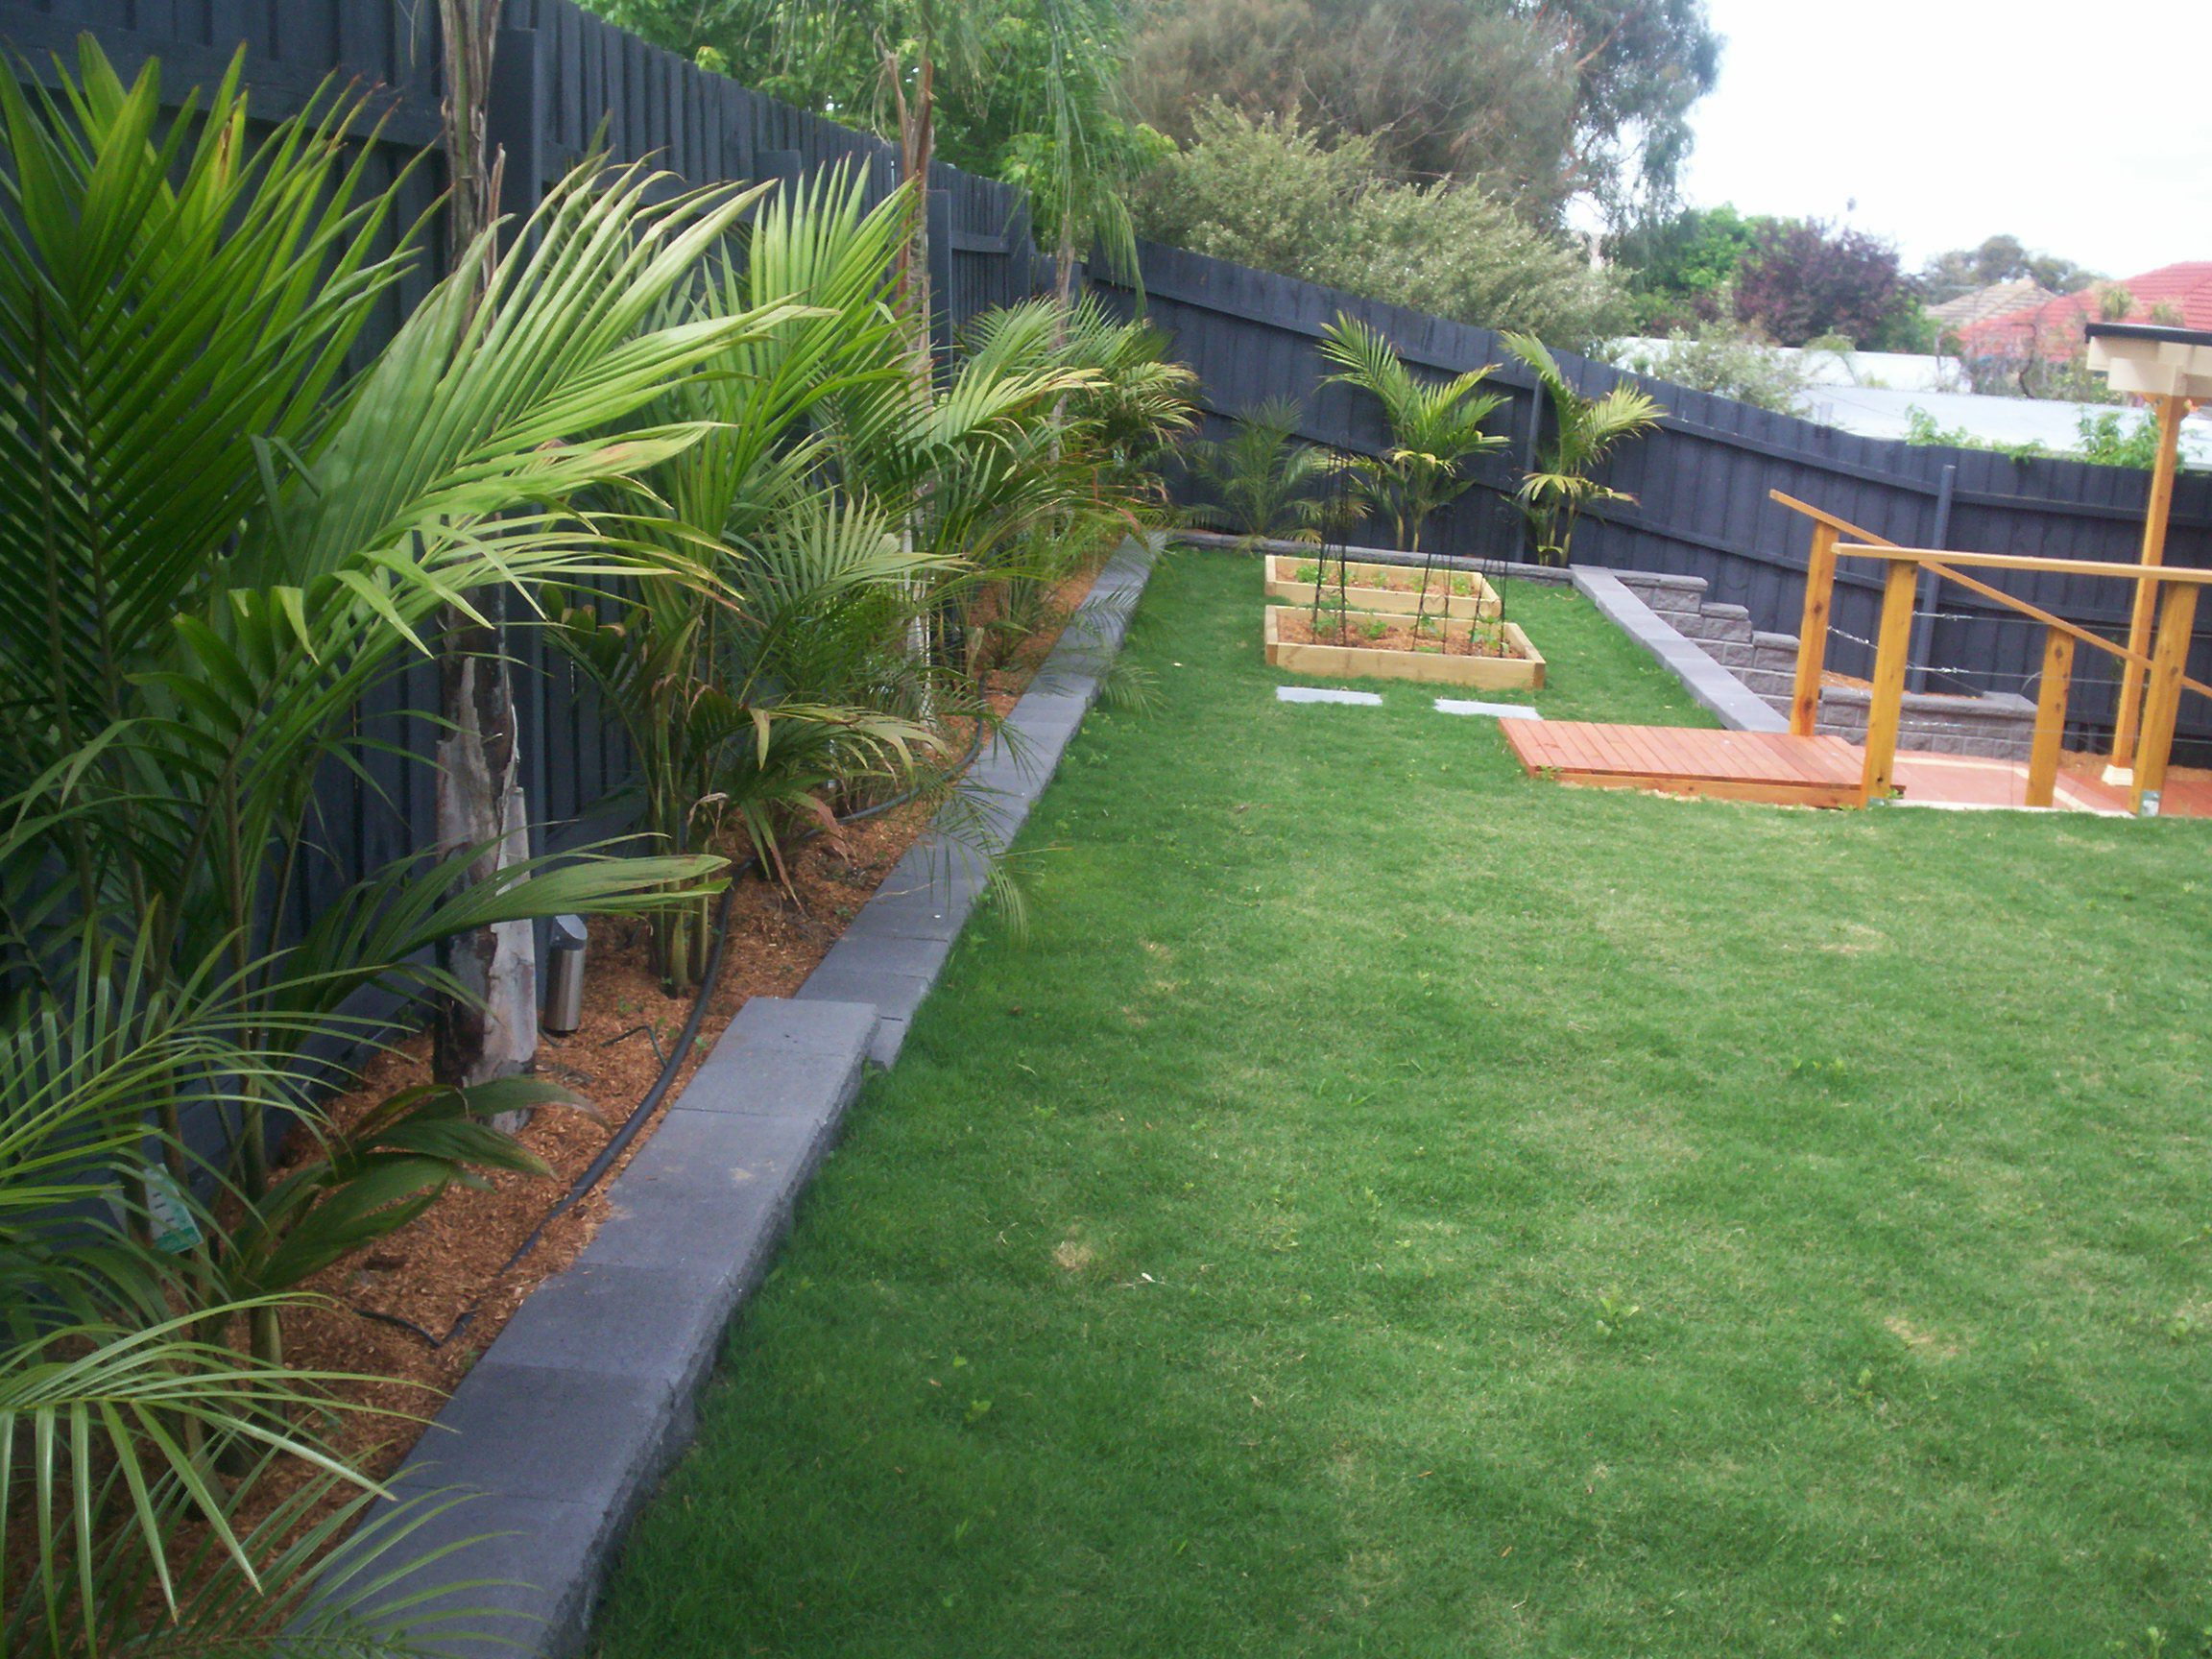 Wooden Stairs and Green Grass Area Completing Interesting Backyard Landscaping Ideas with Dark Wall Fence